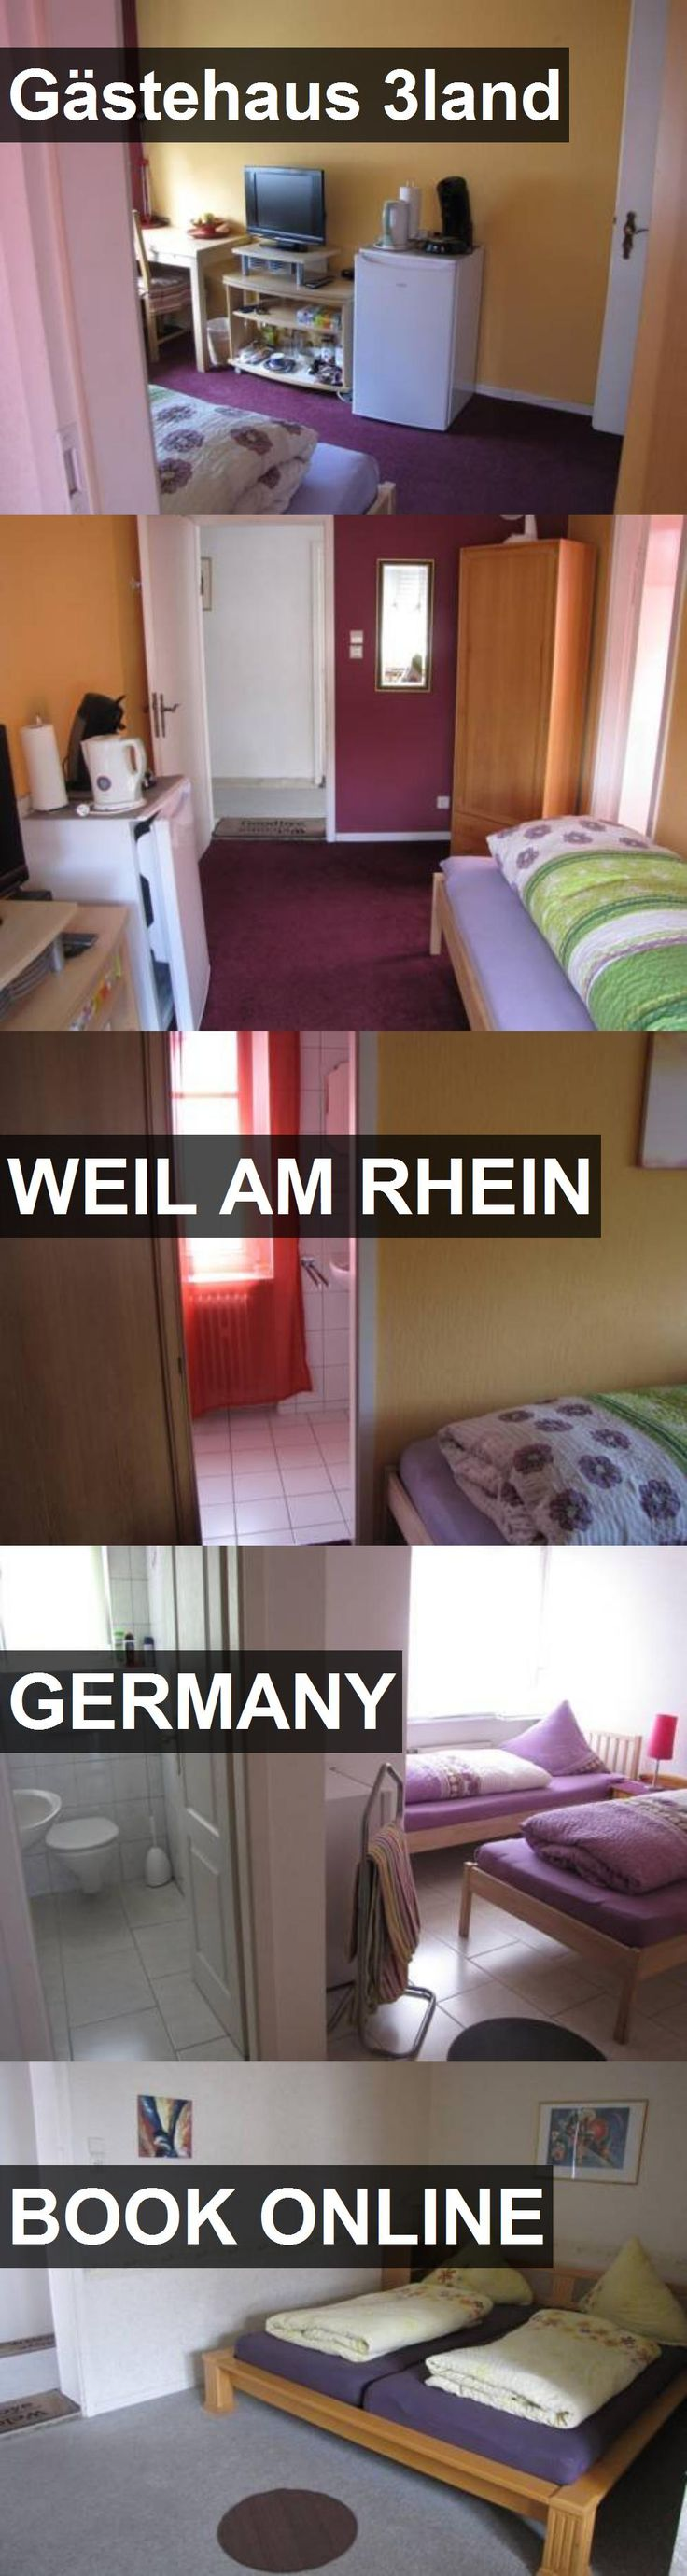 Hotel Gästehaus 3land in Weil am Rhein, Germany. For more information, photos, reviews and best prices please follow the link. #Germany #WeilamRhein #travel #vacation #hotel